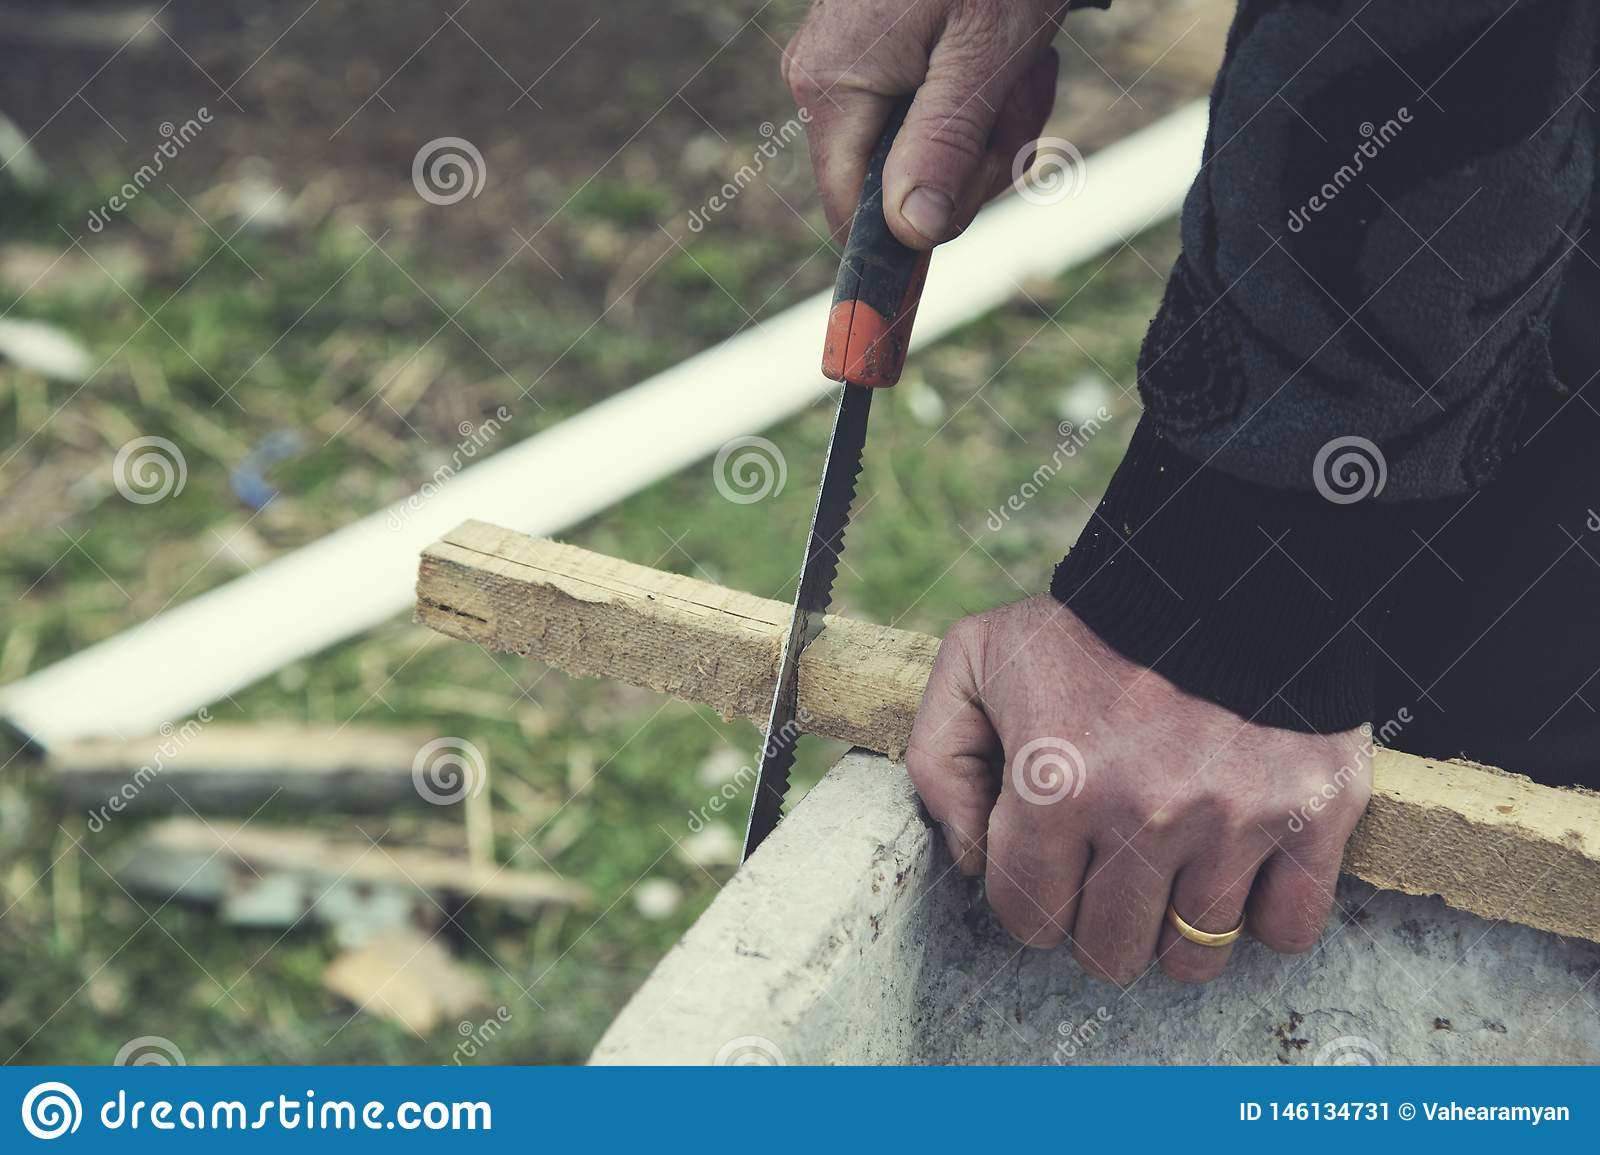 Man hand saws with wood